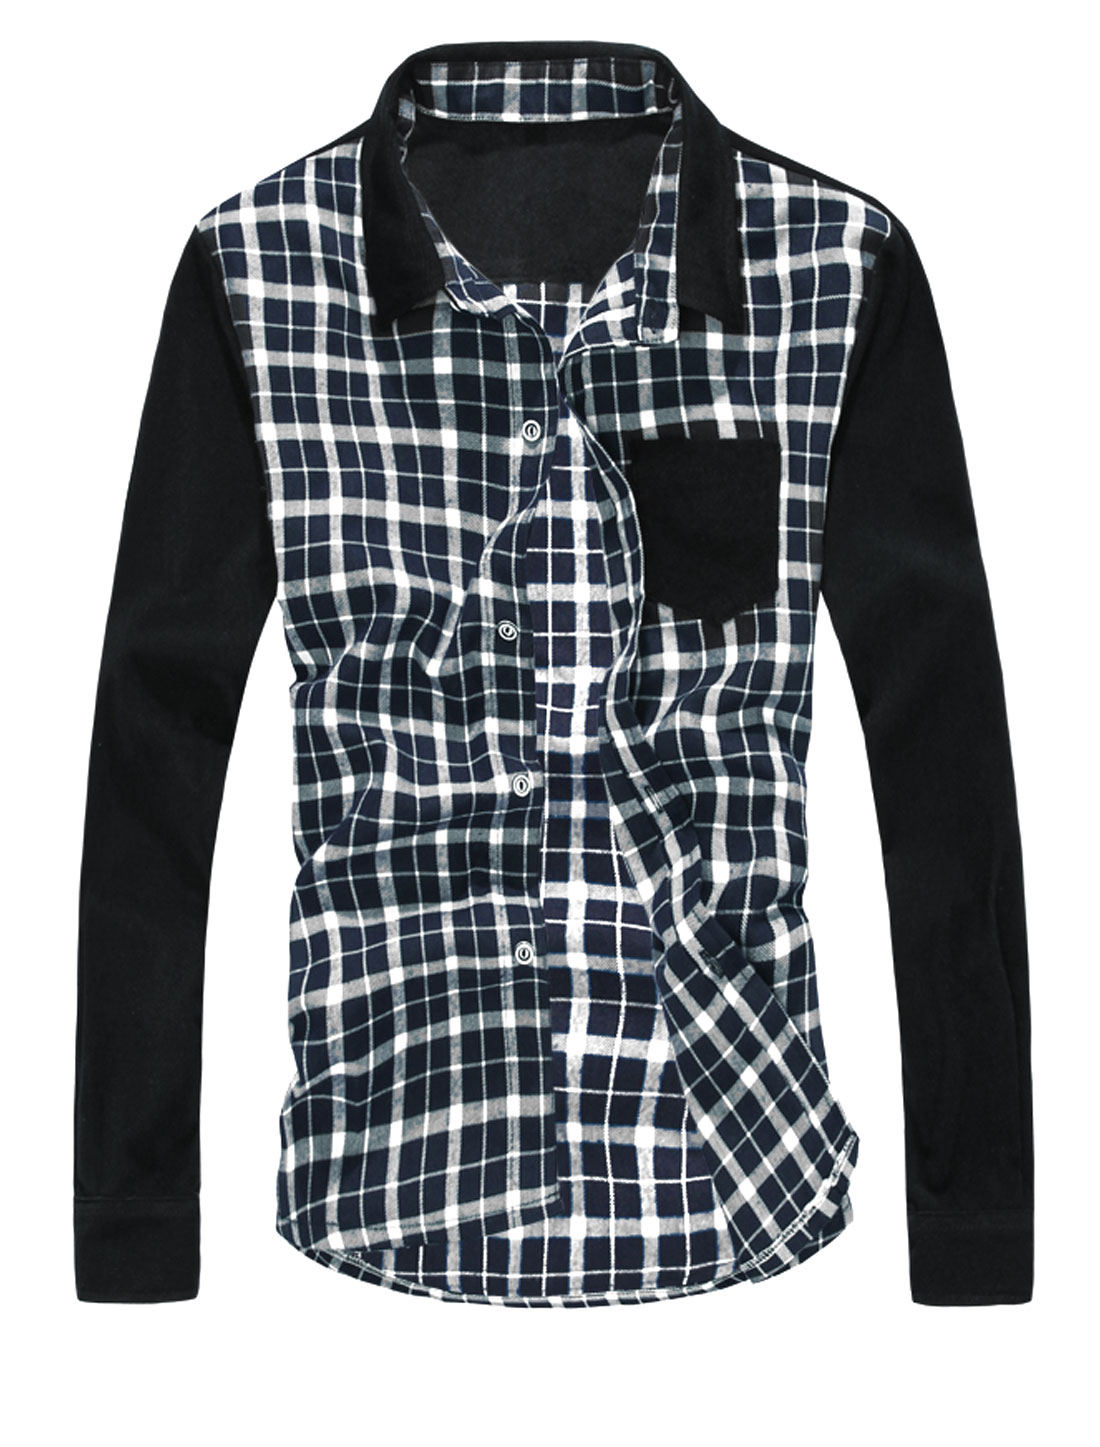 Men Checkered Pattern Chest Pocket Contrast Long Sleeves Shirt White Black M